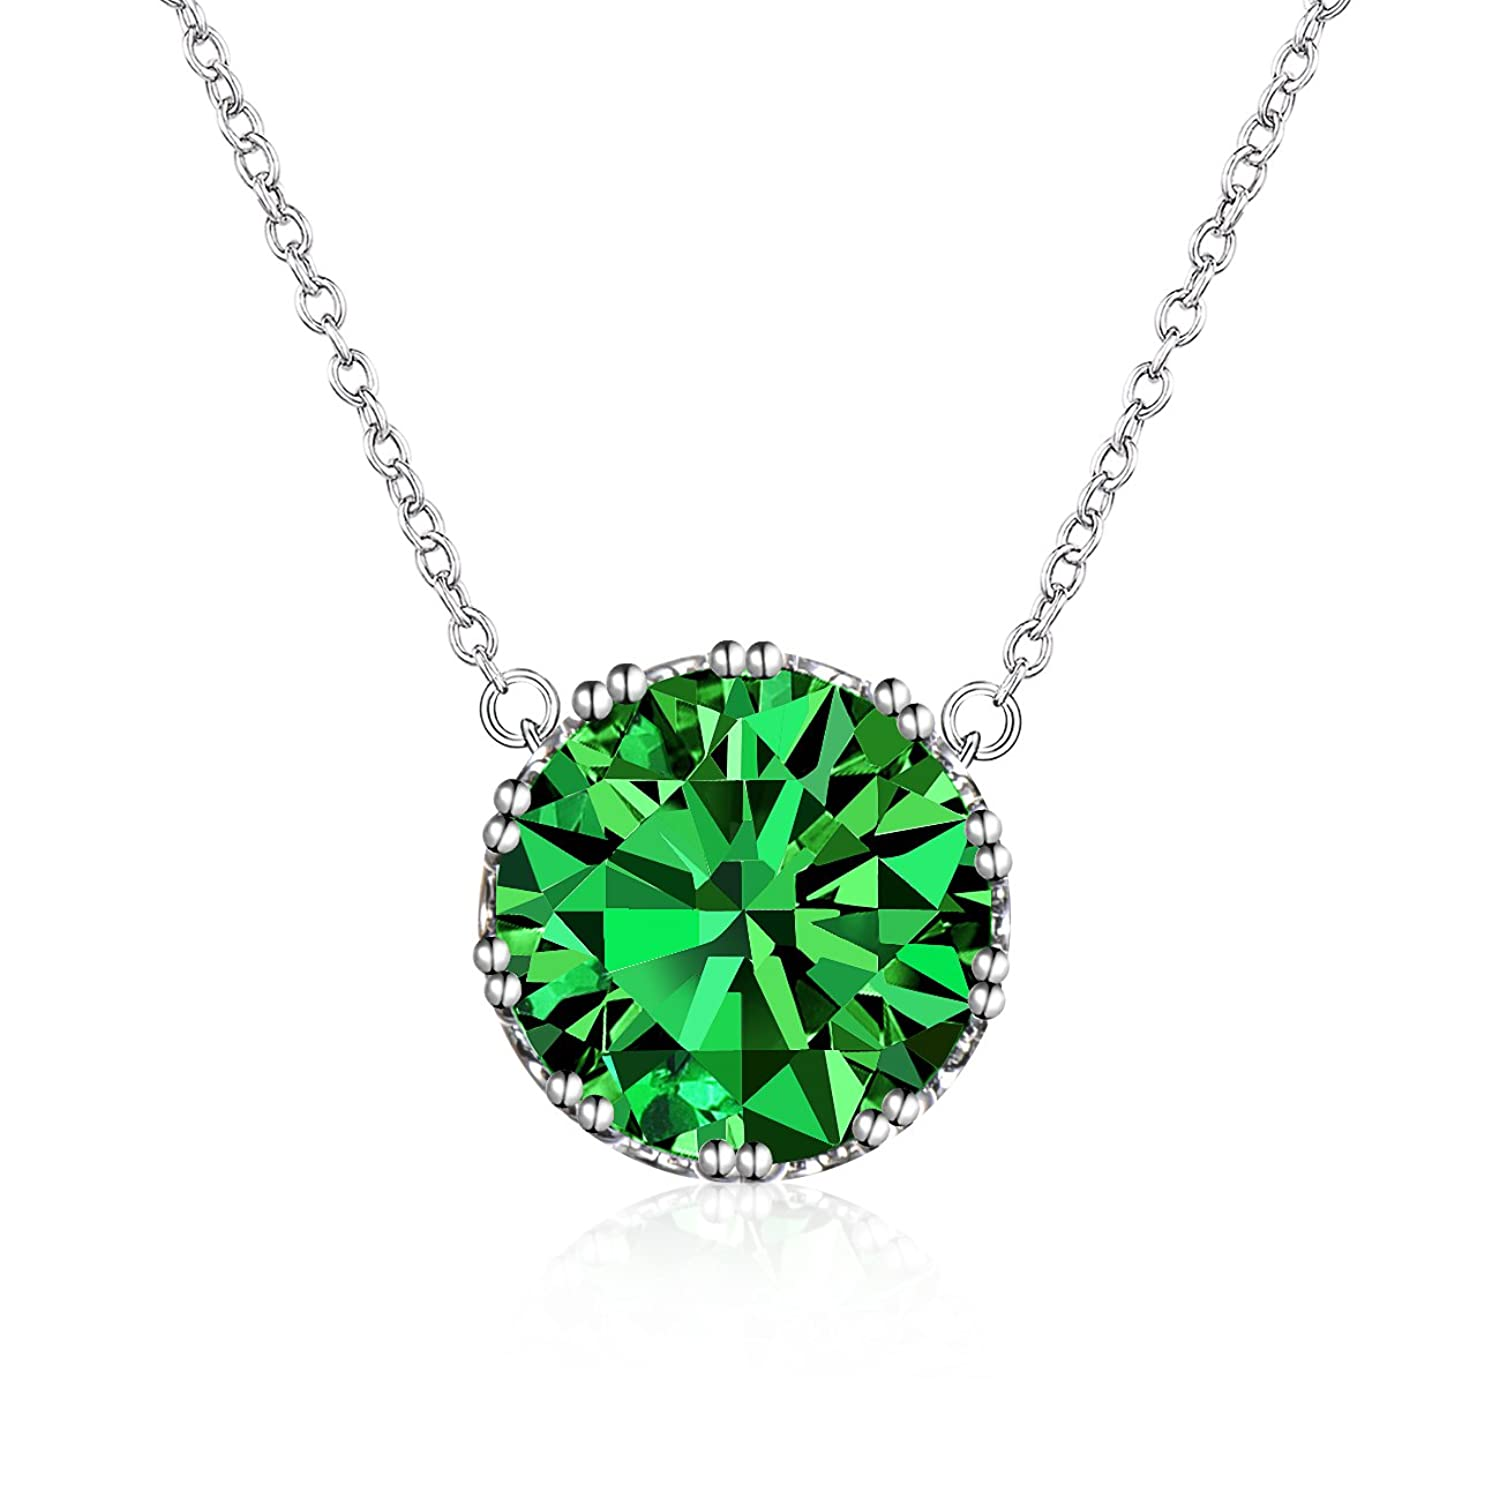 Beyond Love 2.25 Ct Round Cut Emerald Cubic Zirconia CZ Solitaire Pendant Necklace for Women(16